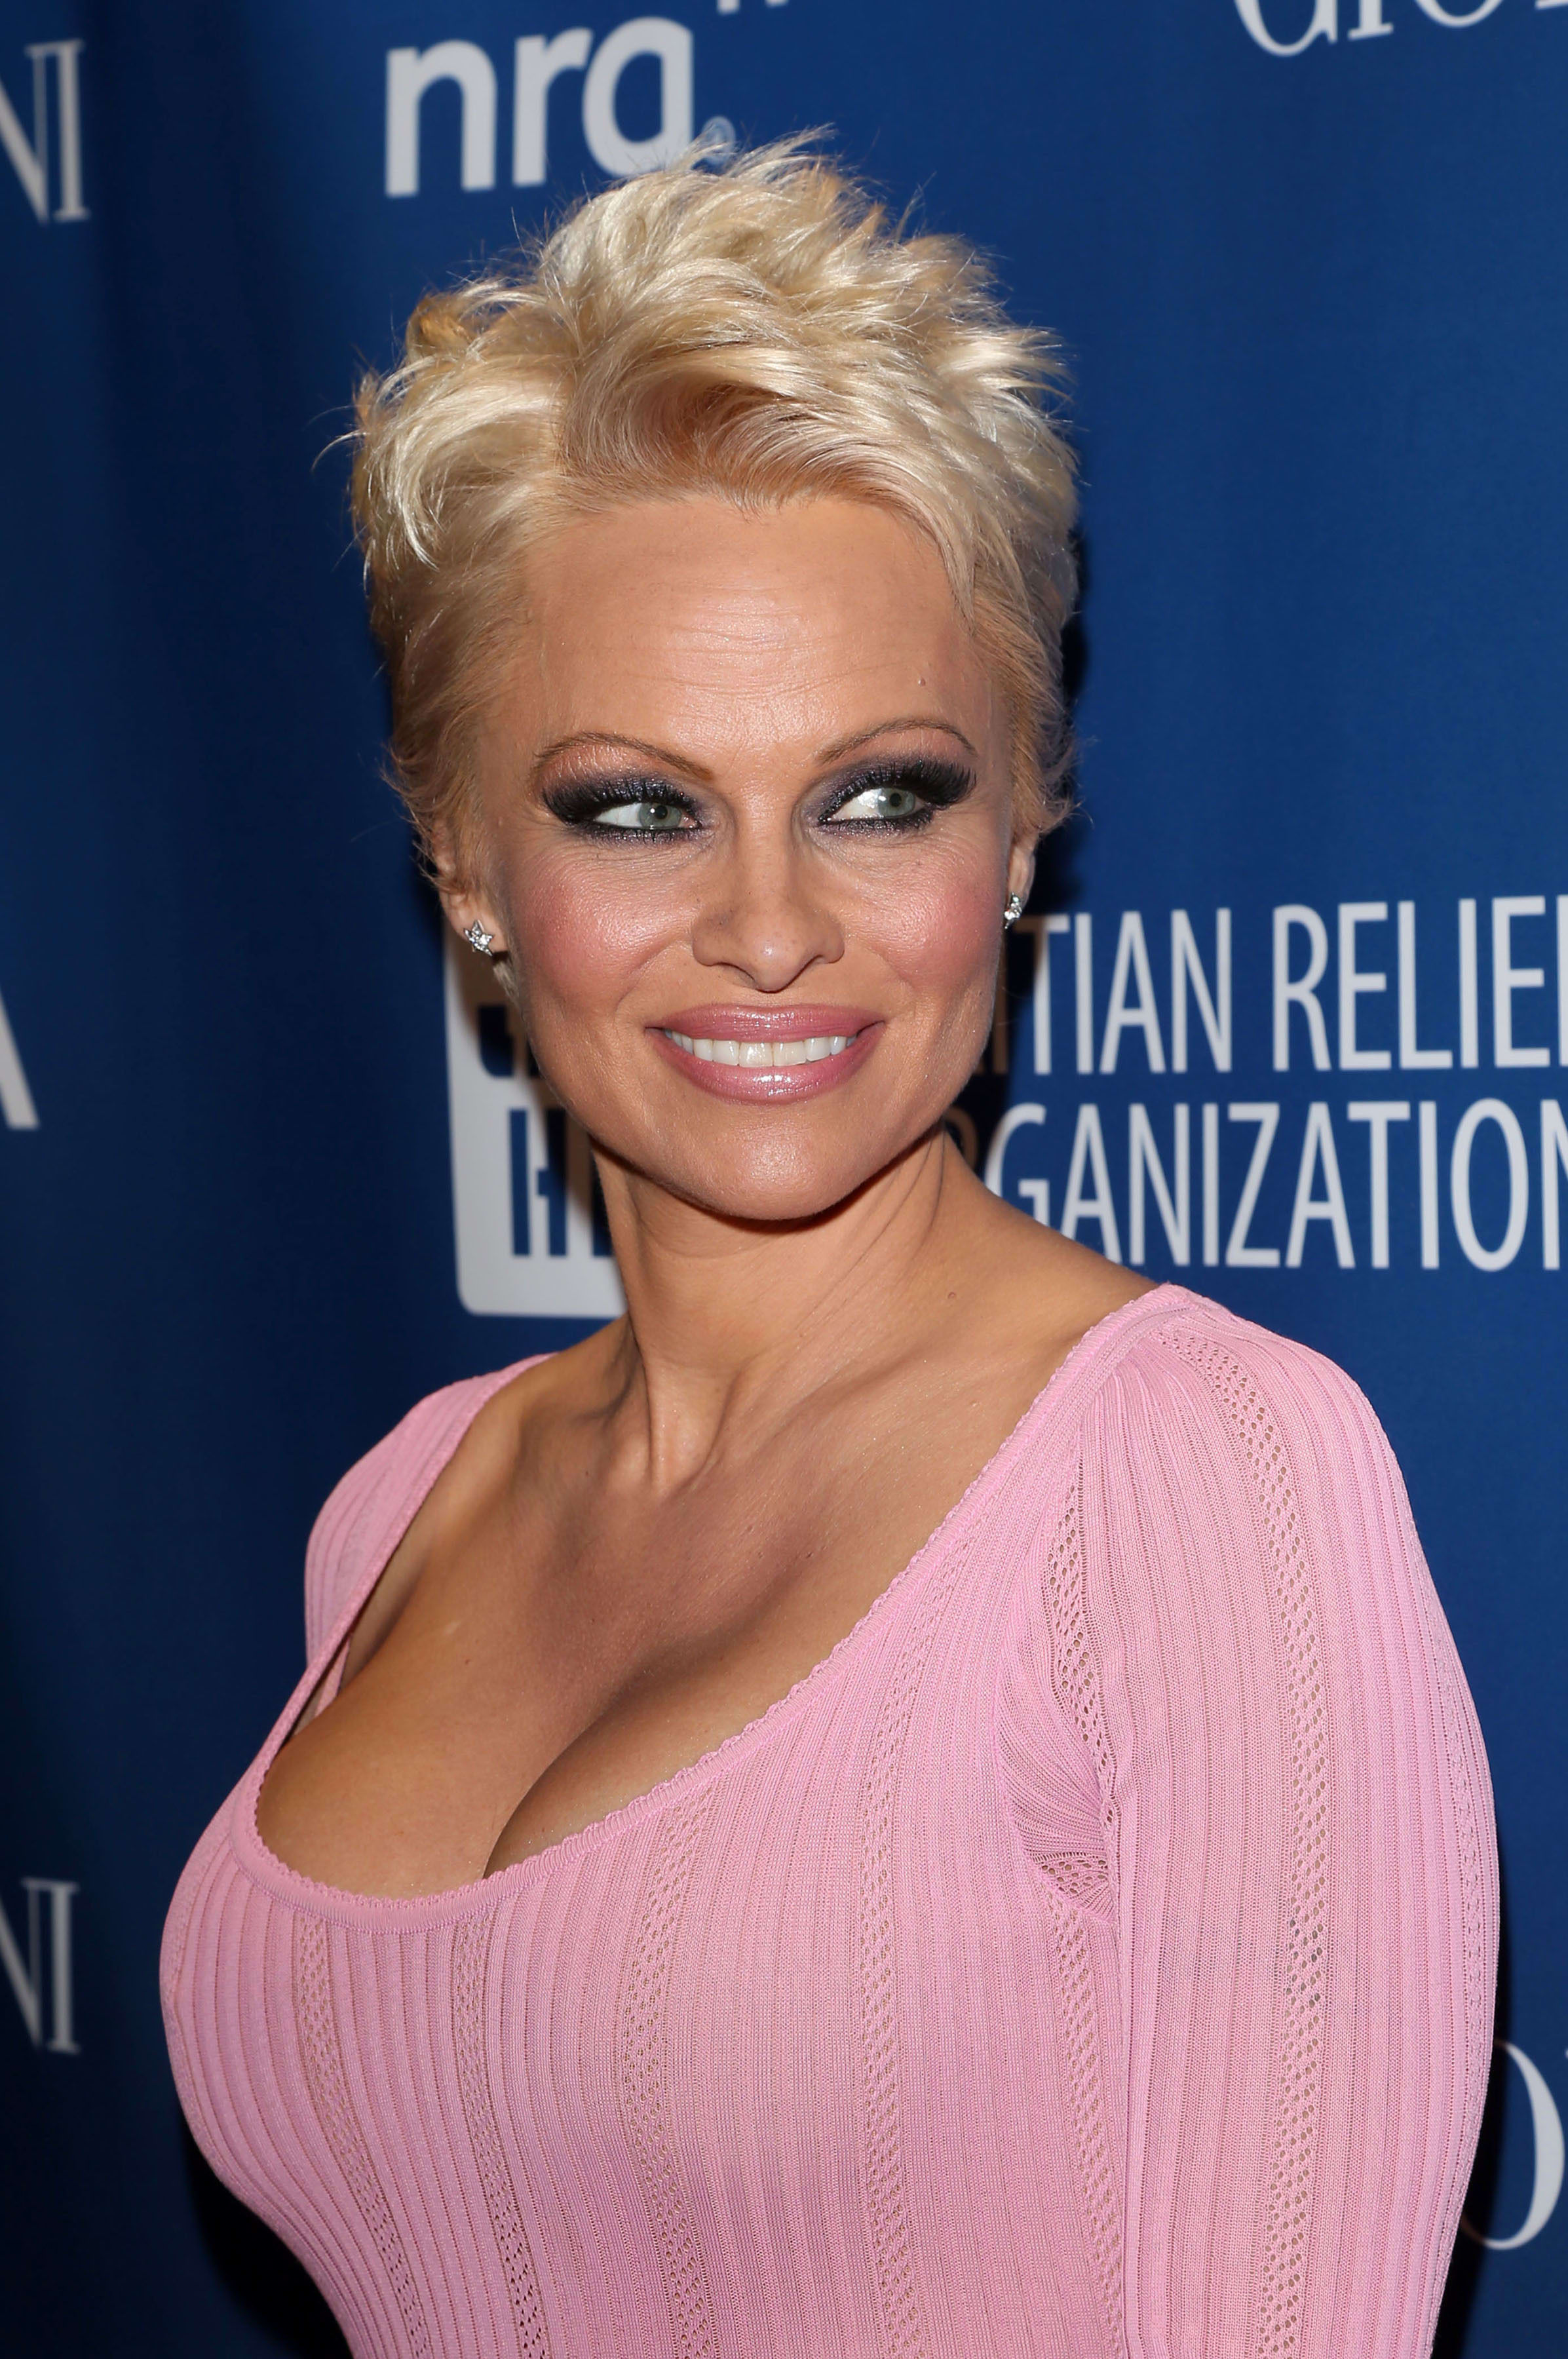 Pam Anderson With Short Hair The Hollywood Gossip